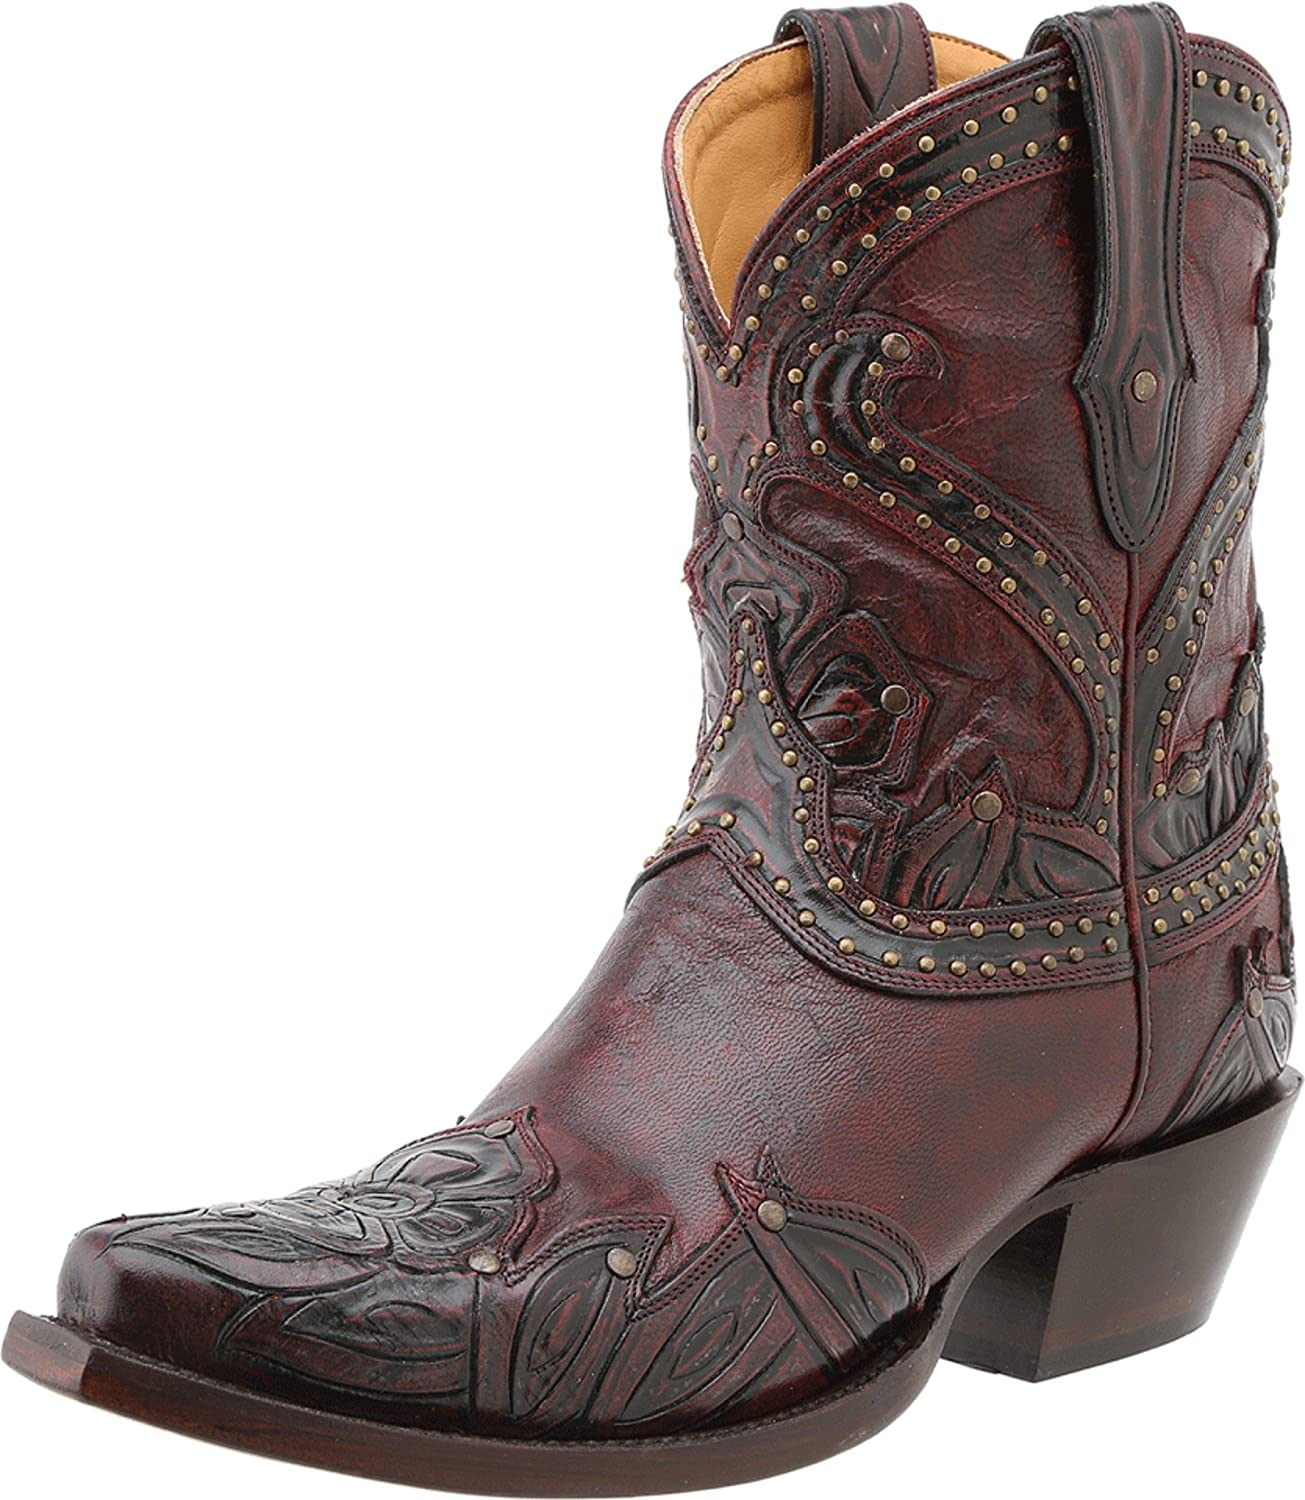 [Lucchese] レディースTooled Petal Leather Western Boot 9 B(M) US Red Tooled Petal B00EJD40RI